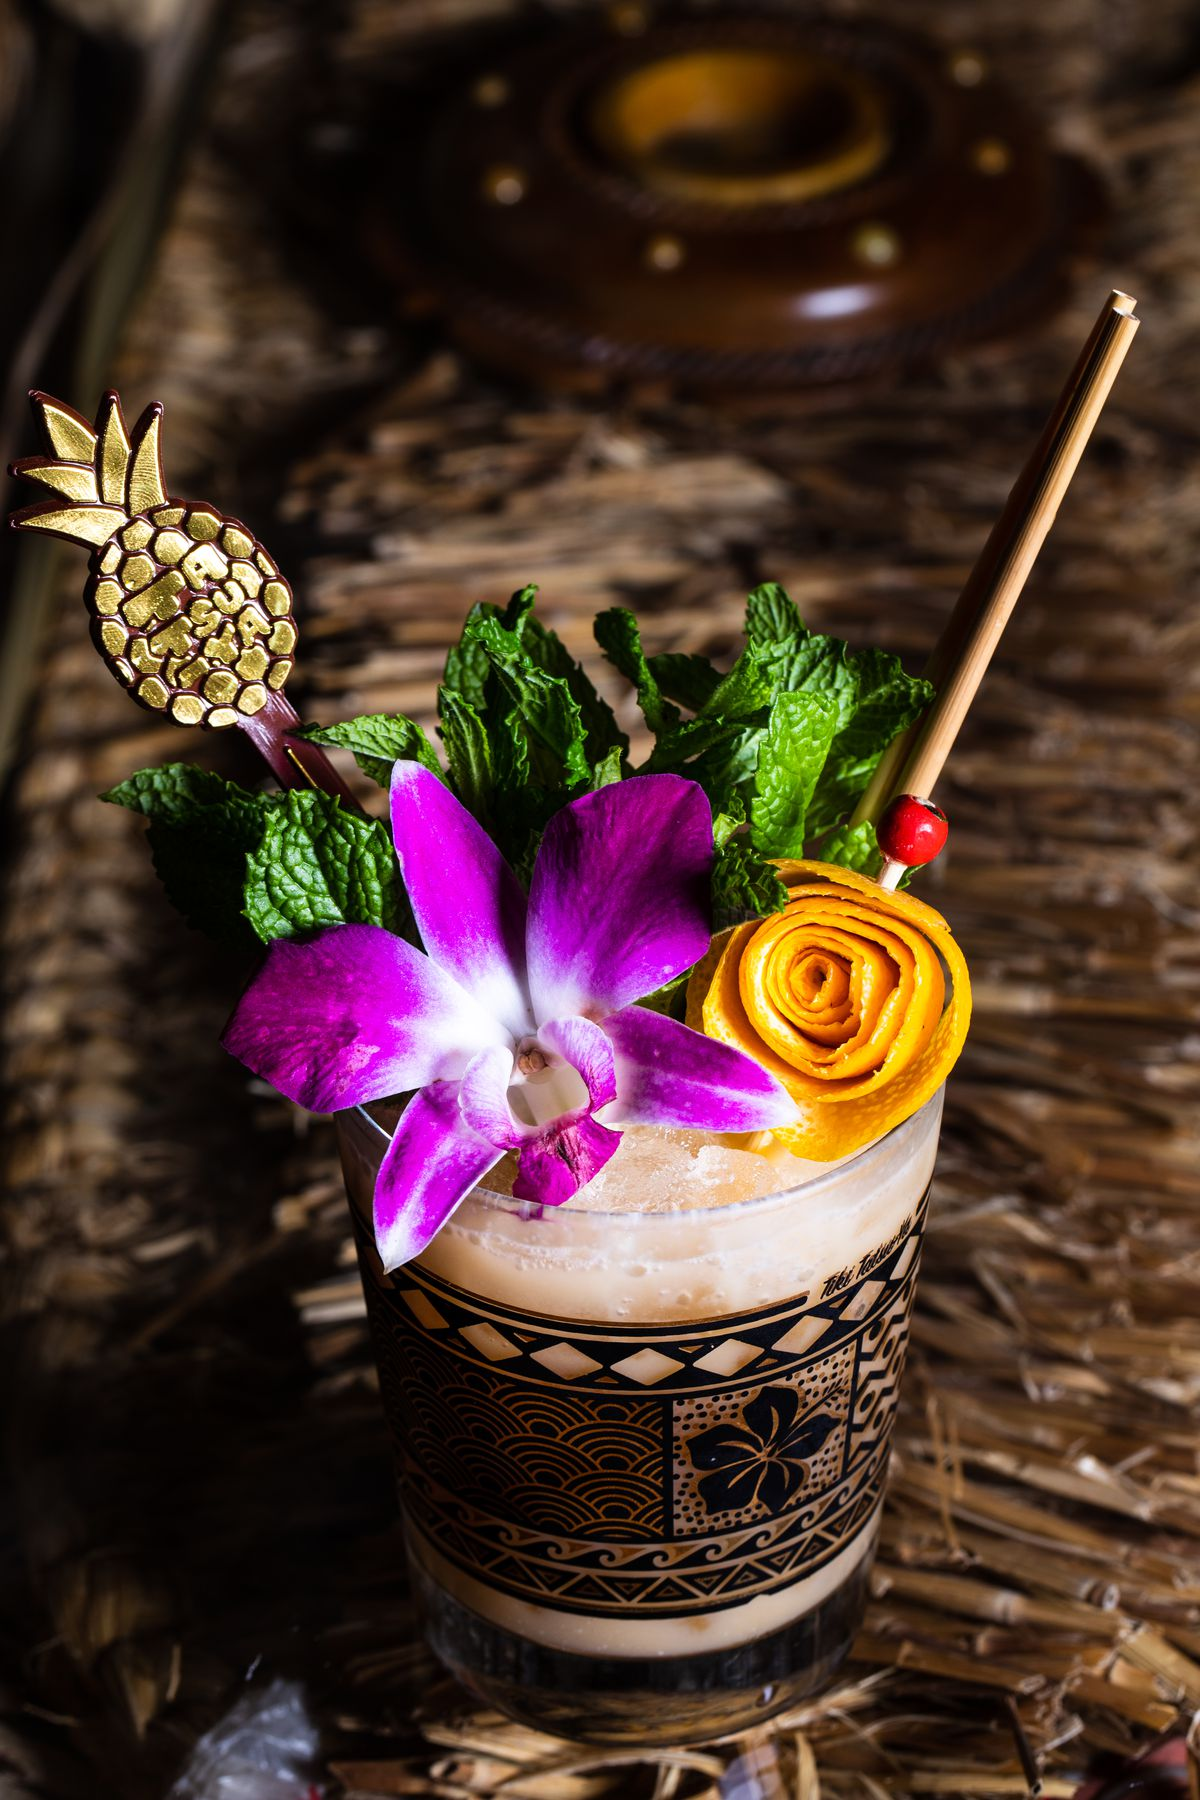 Cocktail topped with an orchid, green mint, and a mango peel curled into a flower, with a pineapple-shaped skewer decoration.